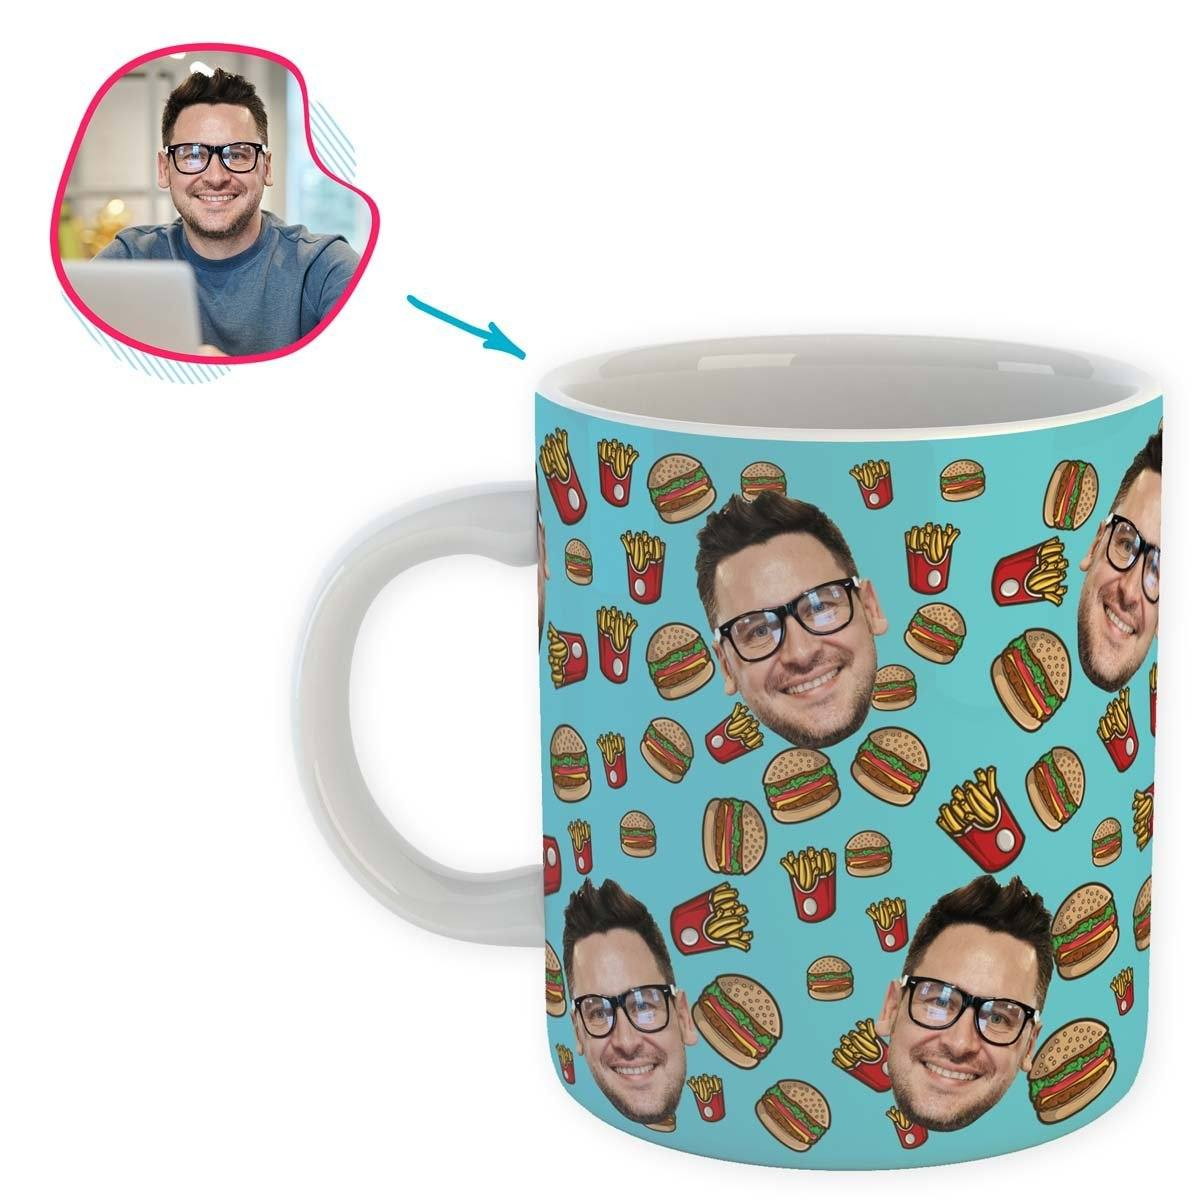 blue Fastfood mug personalized with photo of face printed on it